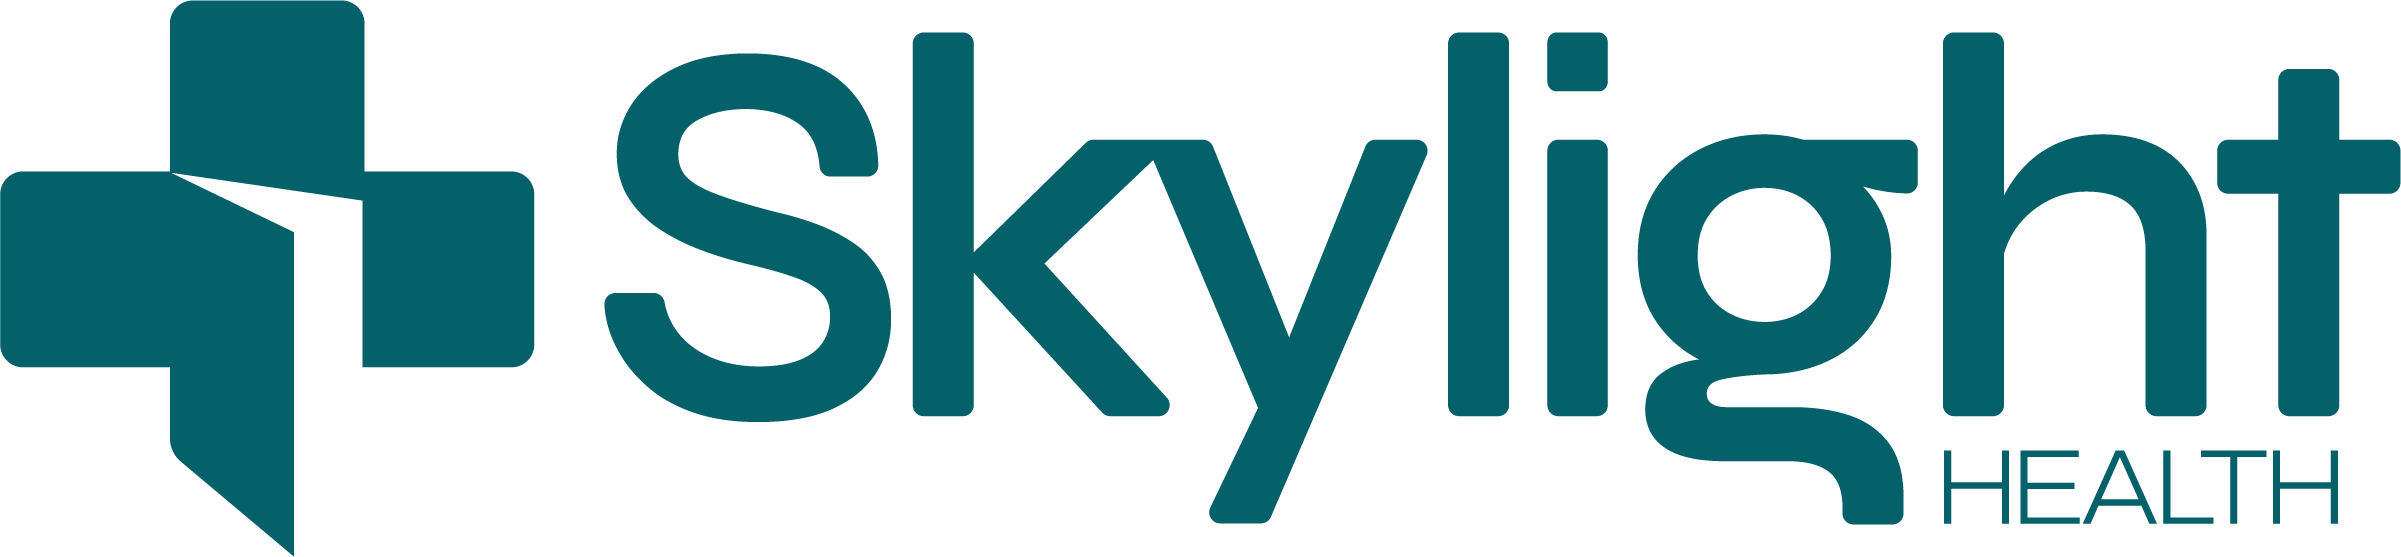 Skylight Health to Add 16th State with Acquisition of Florida Clinic Group with $5 million in Revenue and $1